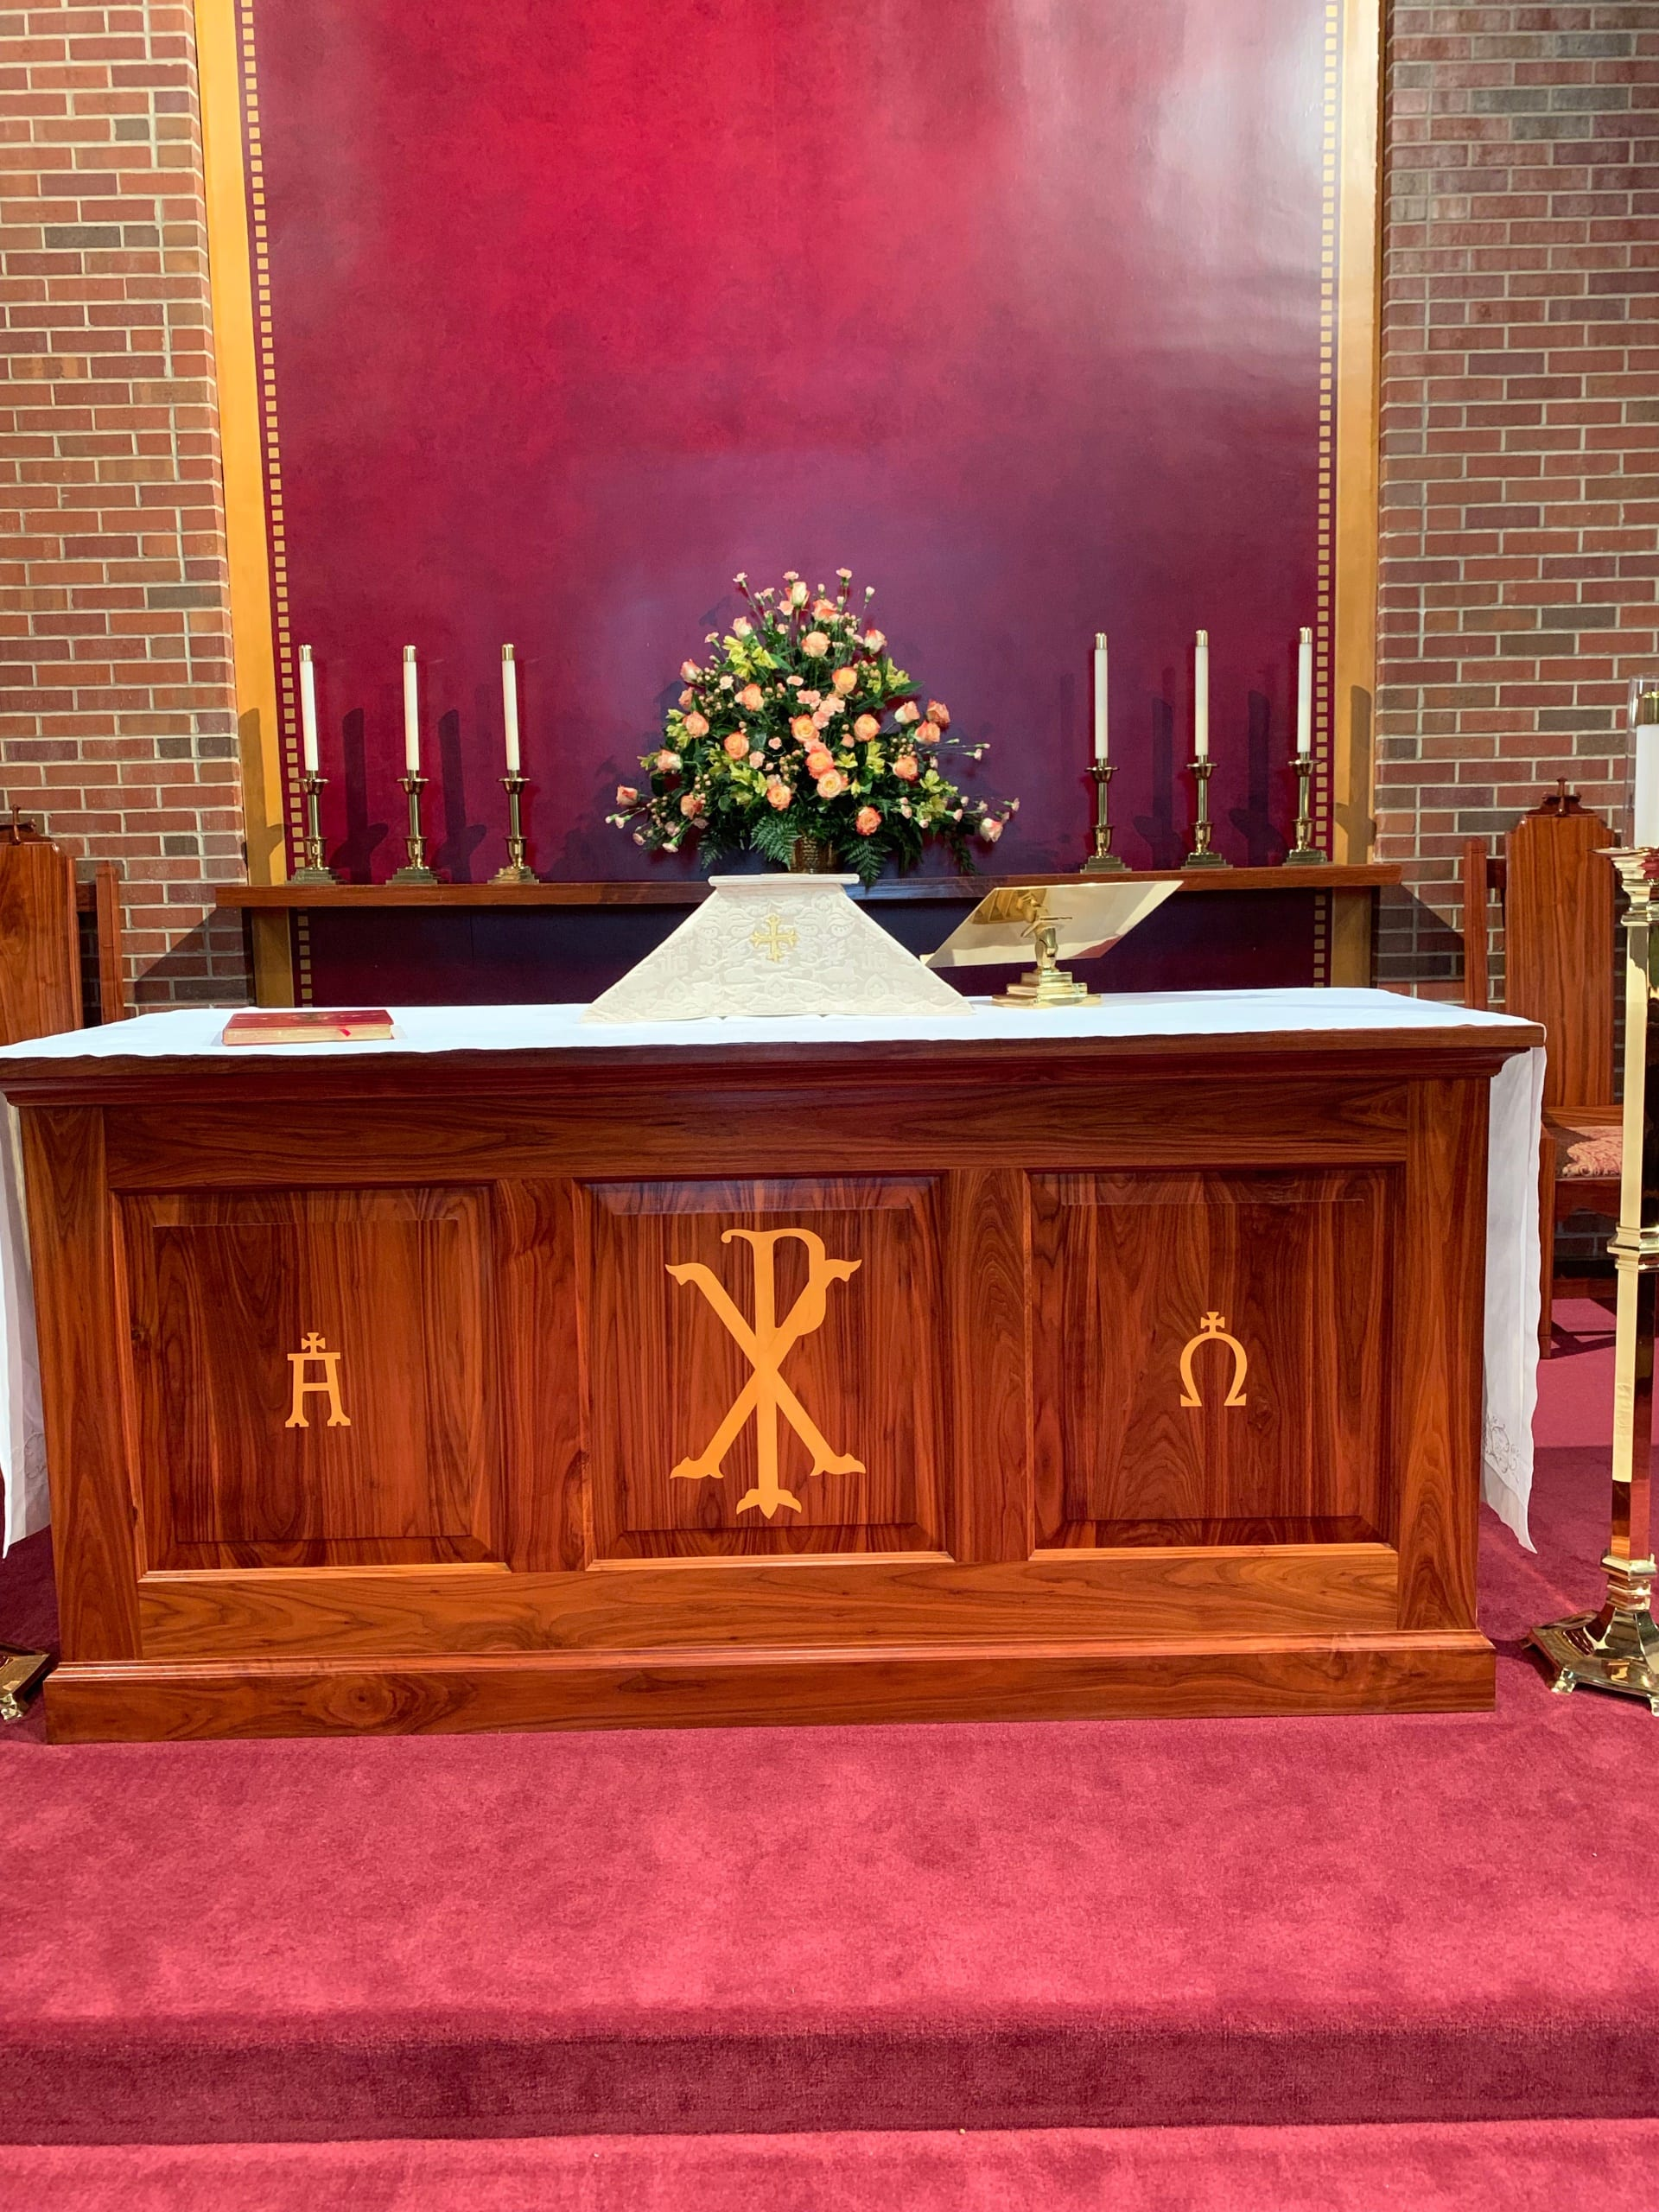 lay liturgical altar guild img 0064 - St. Philip's Episcopal Church